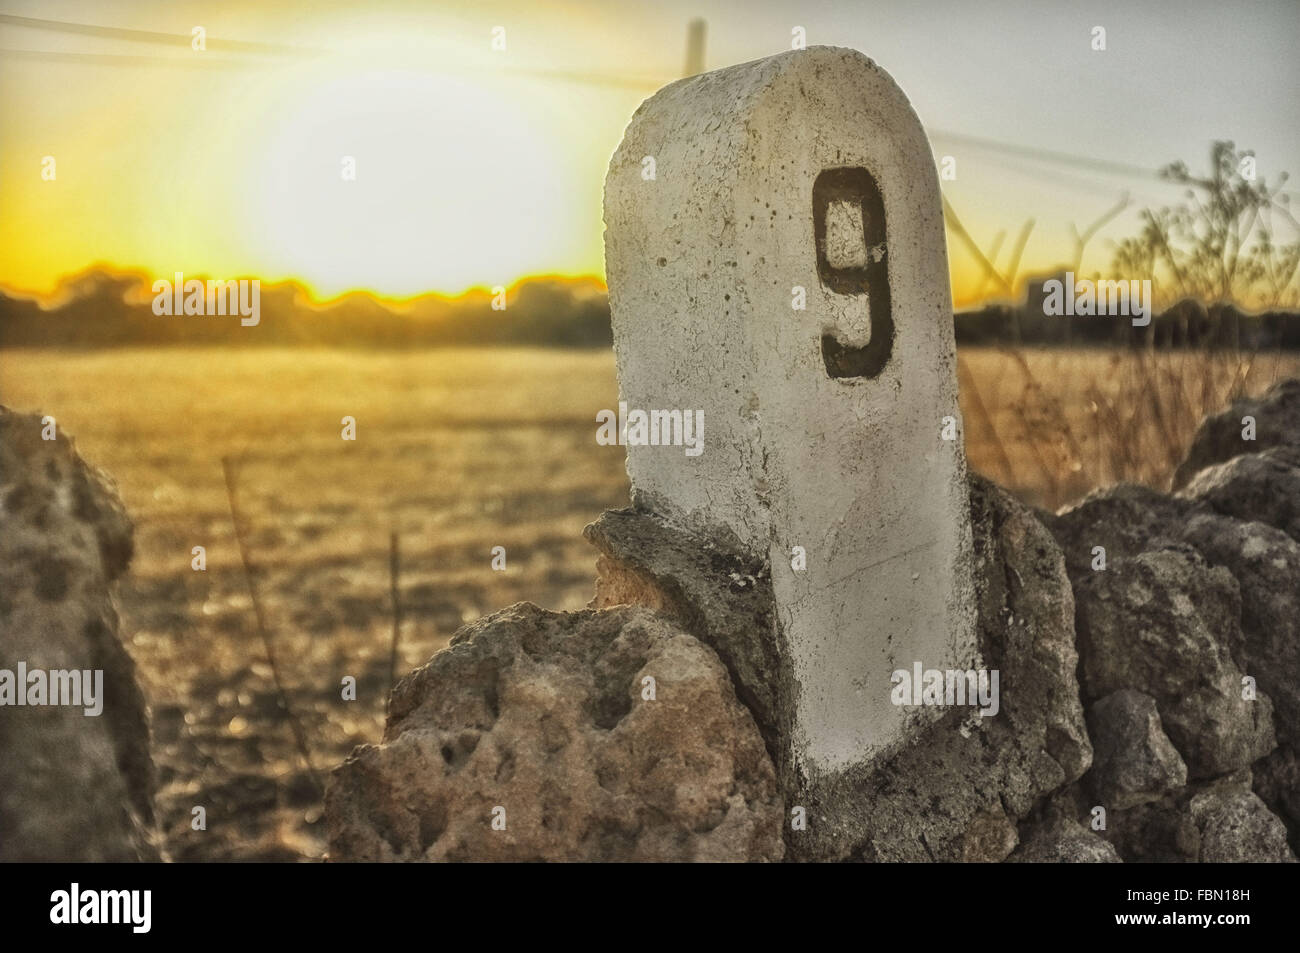 Distance Marker Against Sky During Sunset - Stock Image